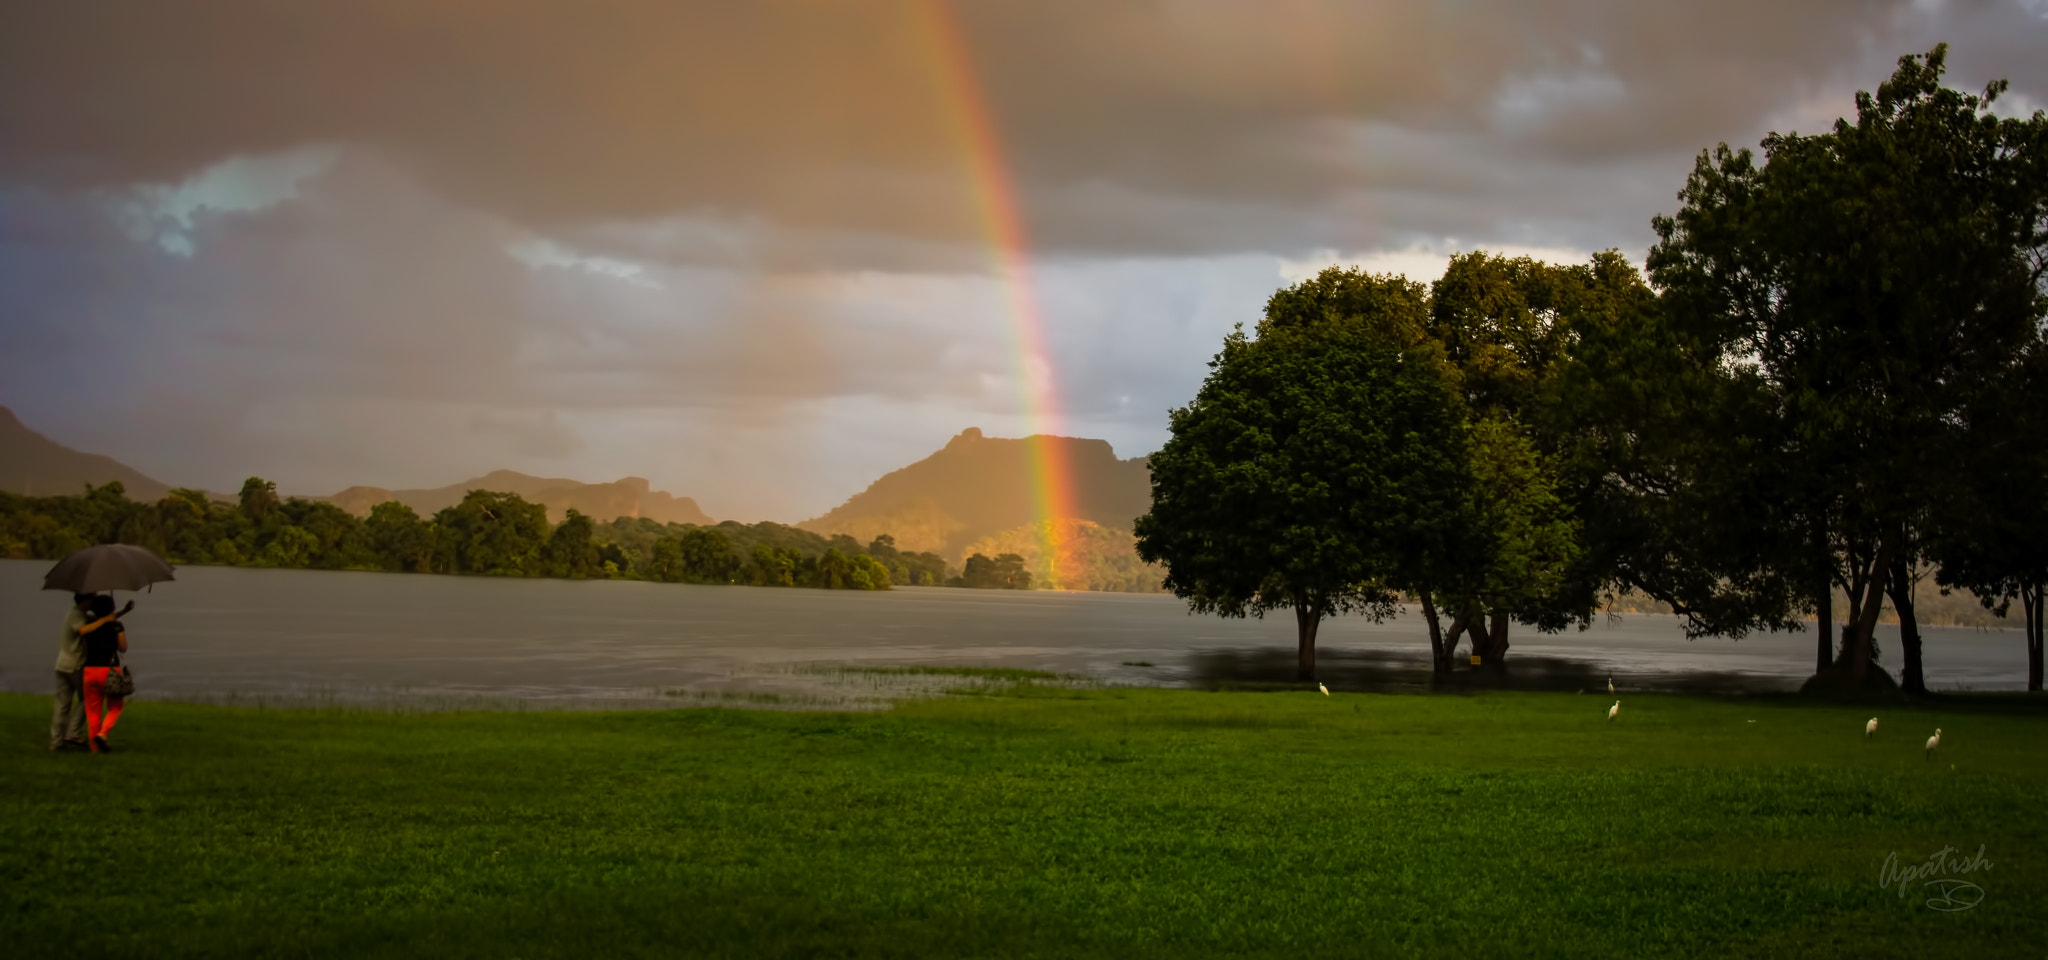 Photograph couples rainbow by Ariel Patish on 500px